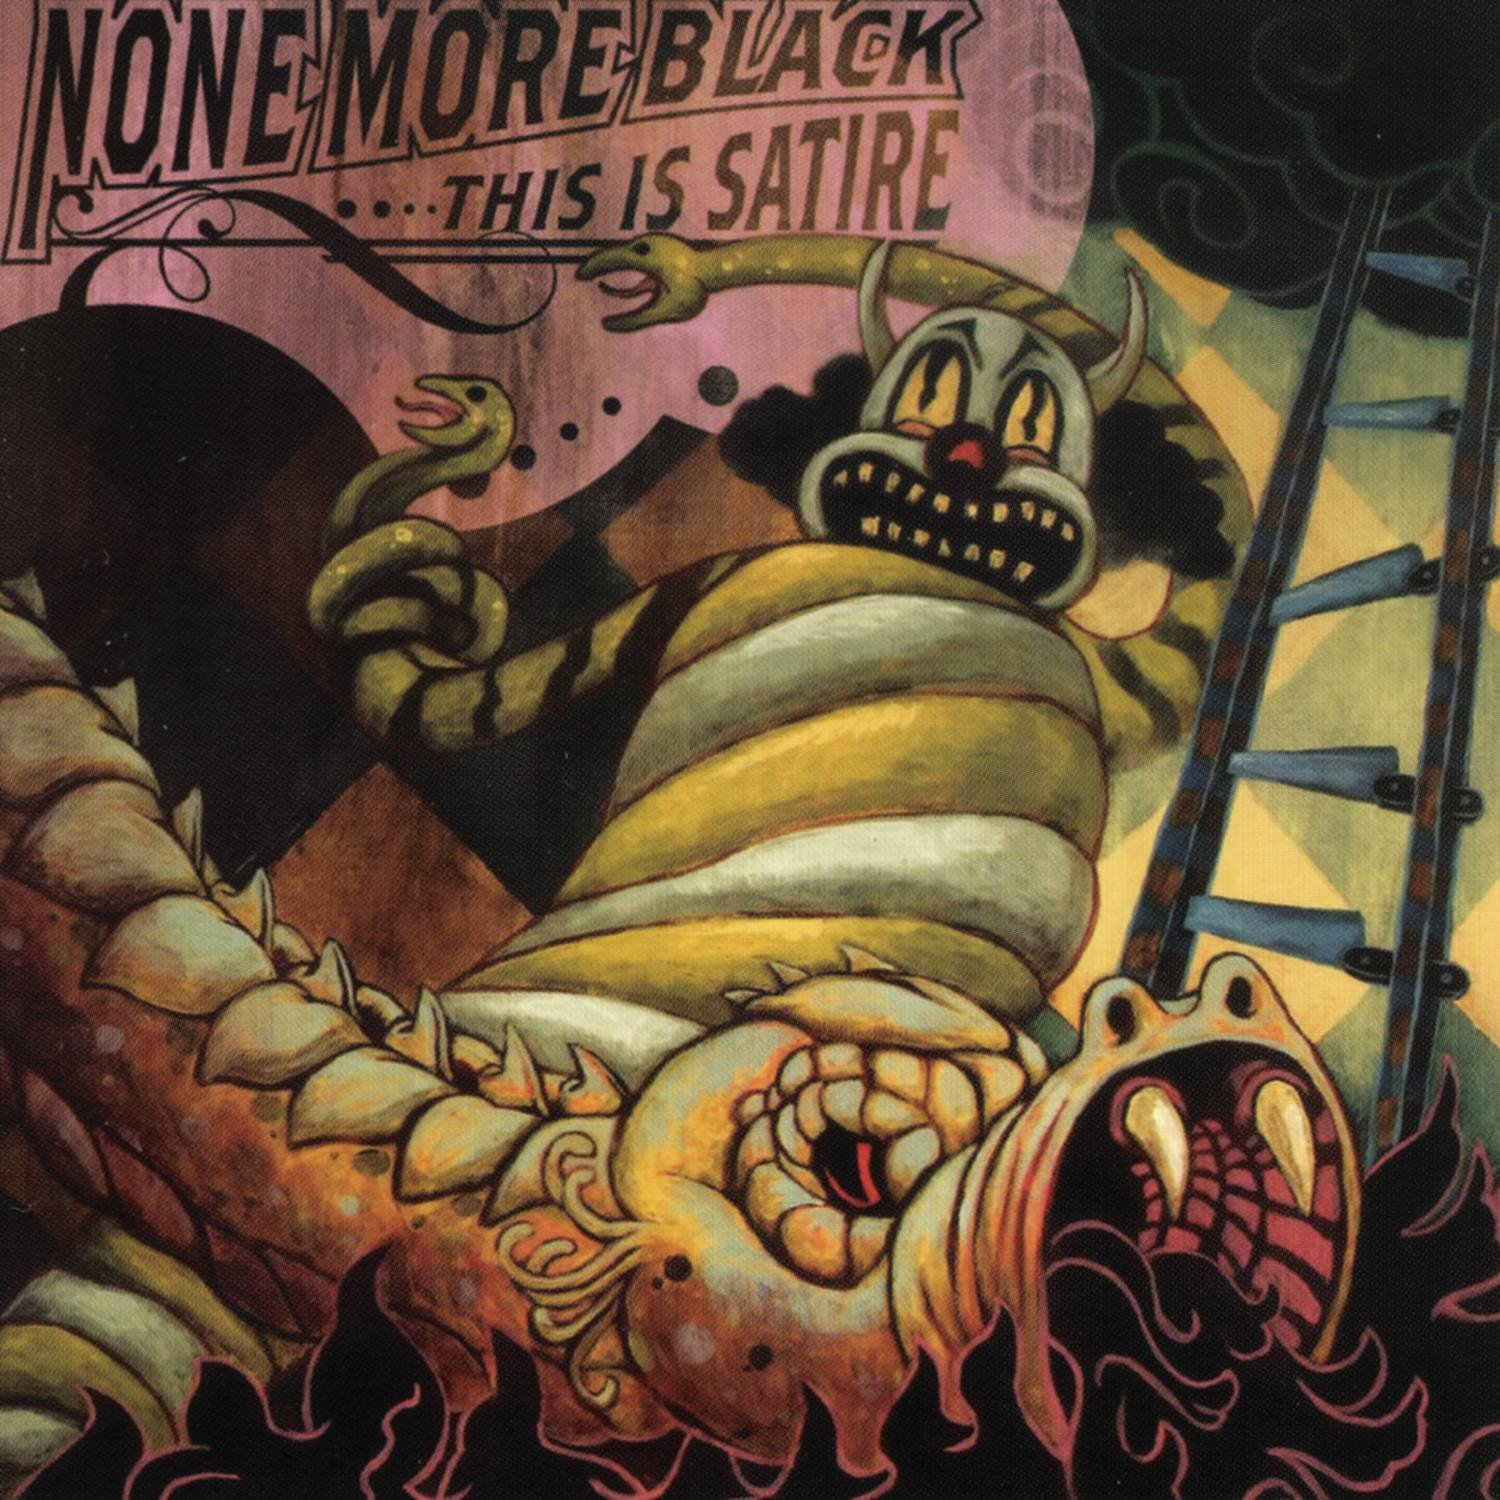 CD : None More Black - This Is Satire (CD)